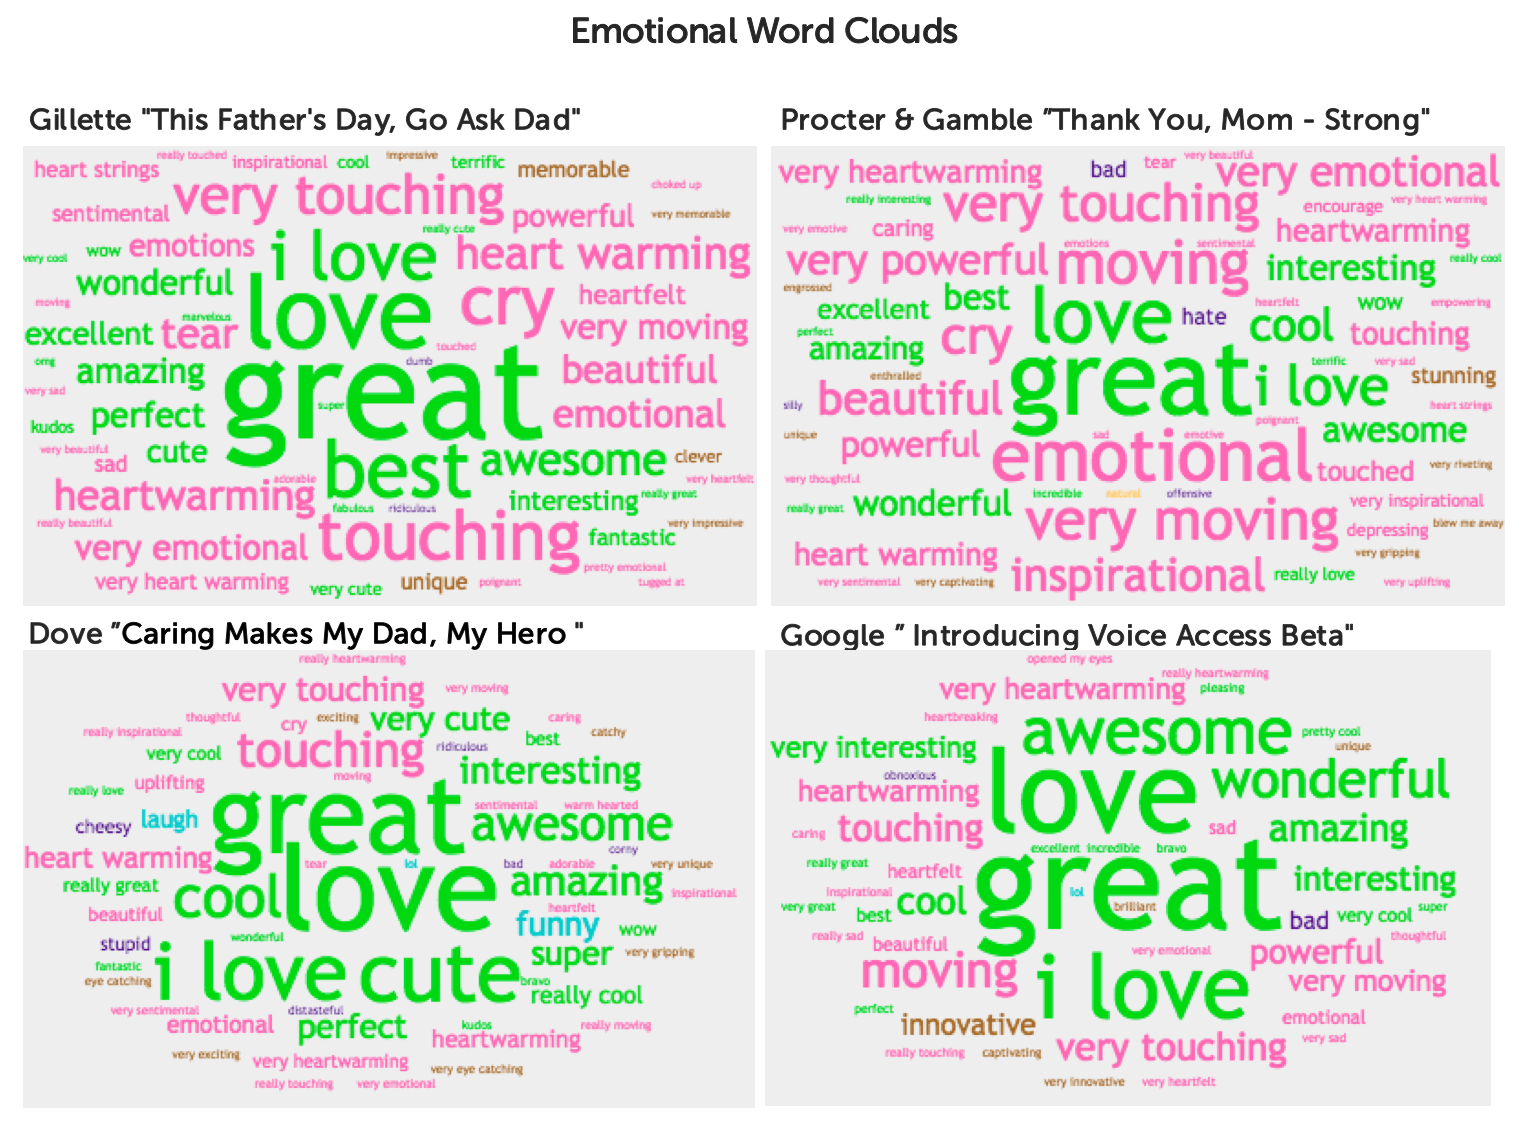 EmotionalWordClouds